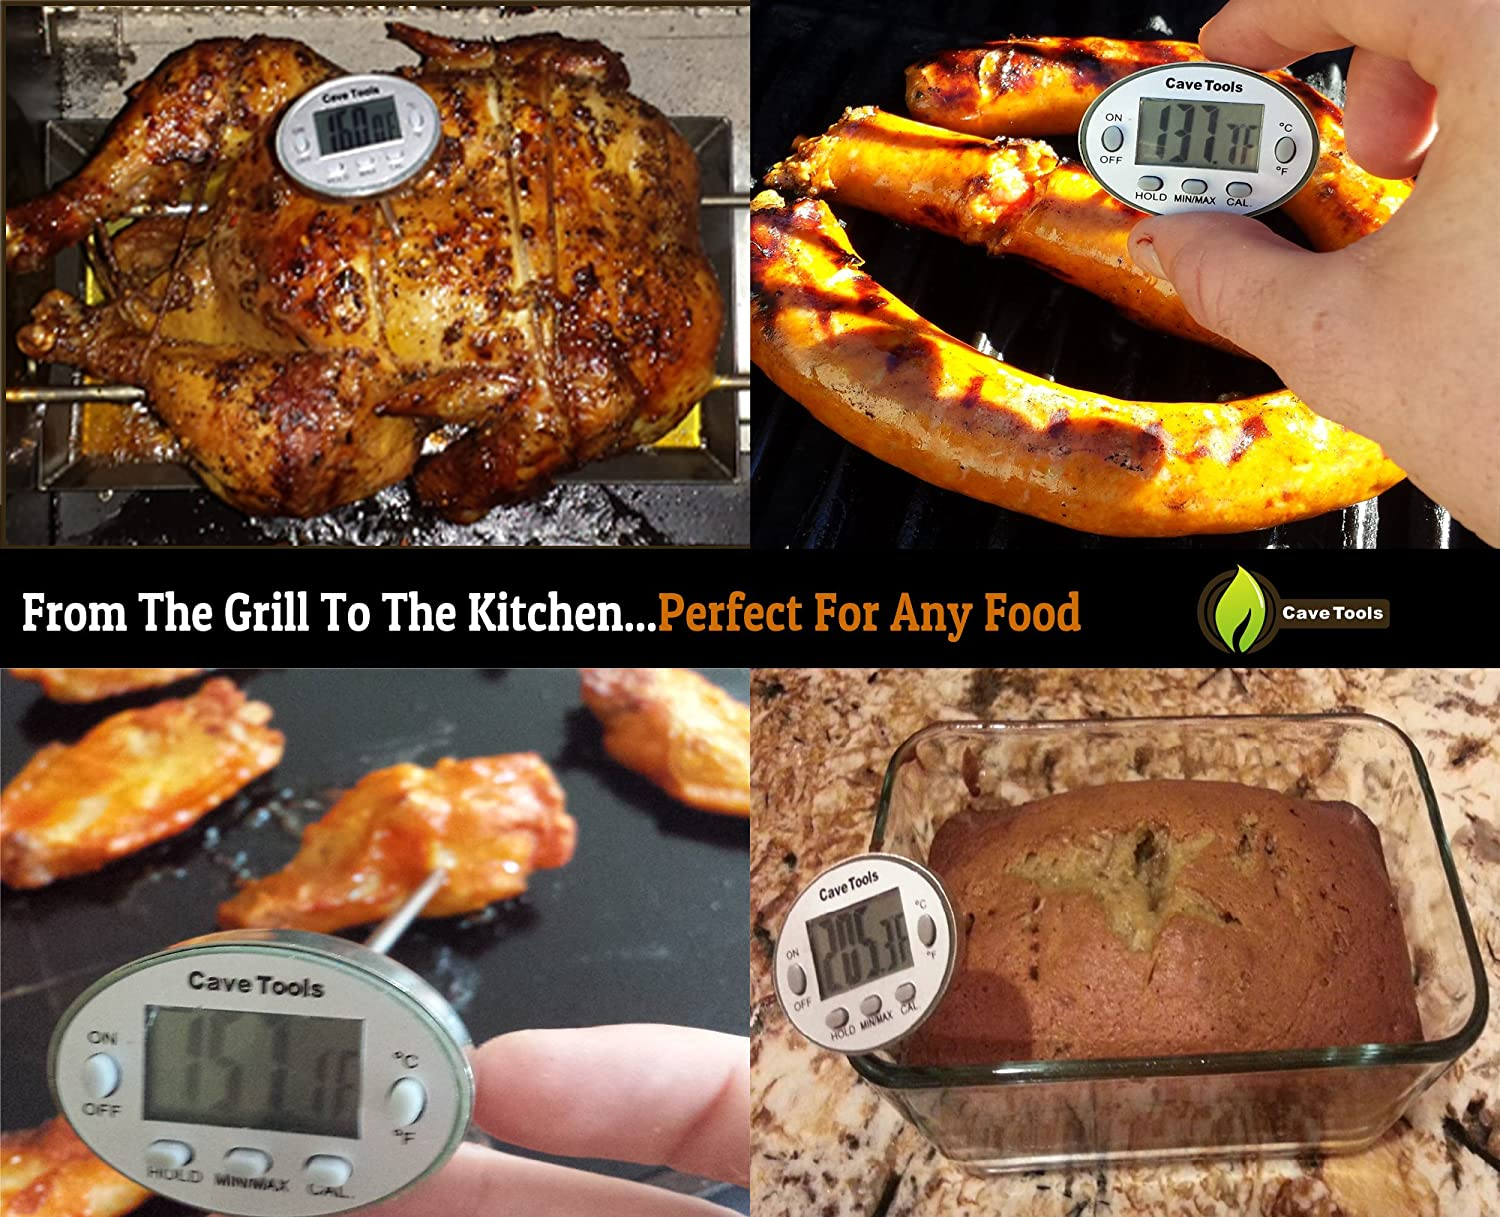 Instant Read Digital Thermometer for Cooking BBQ Grilling Candy Chocolate Meat Baking Liquids Smoker